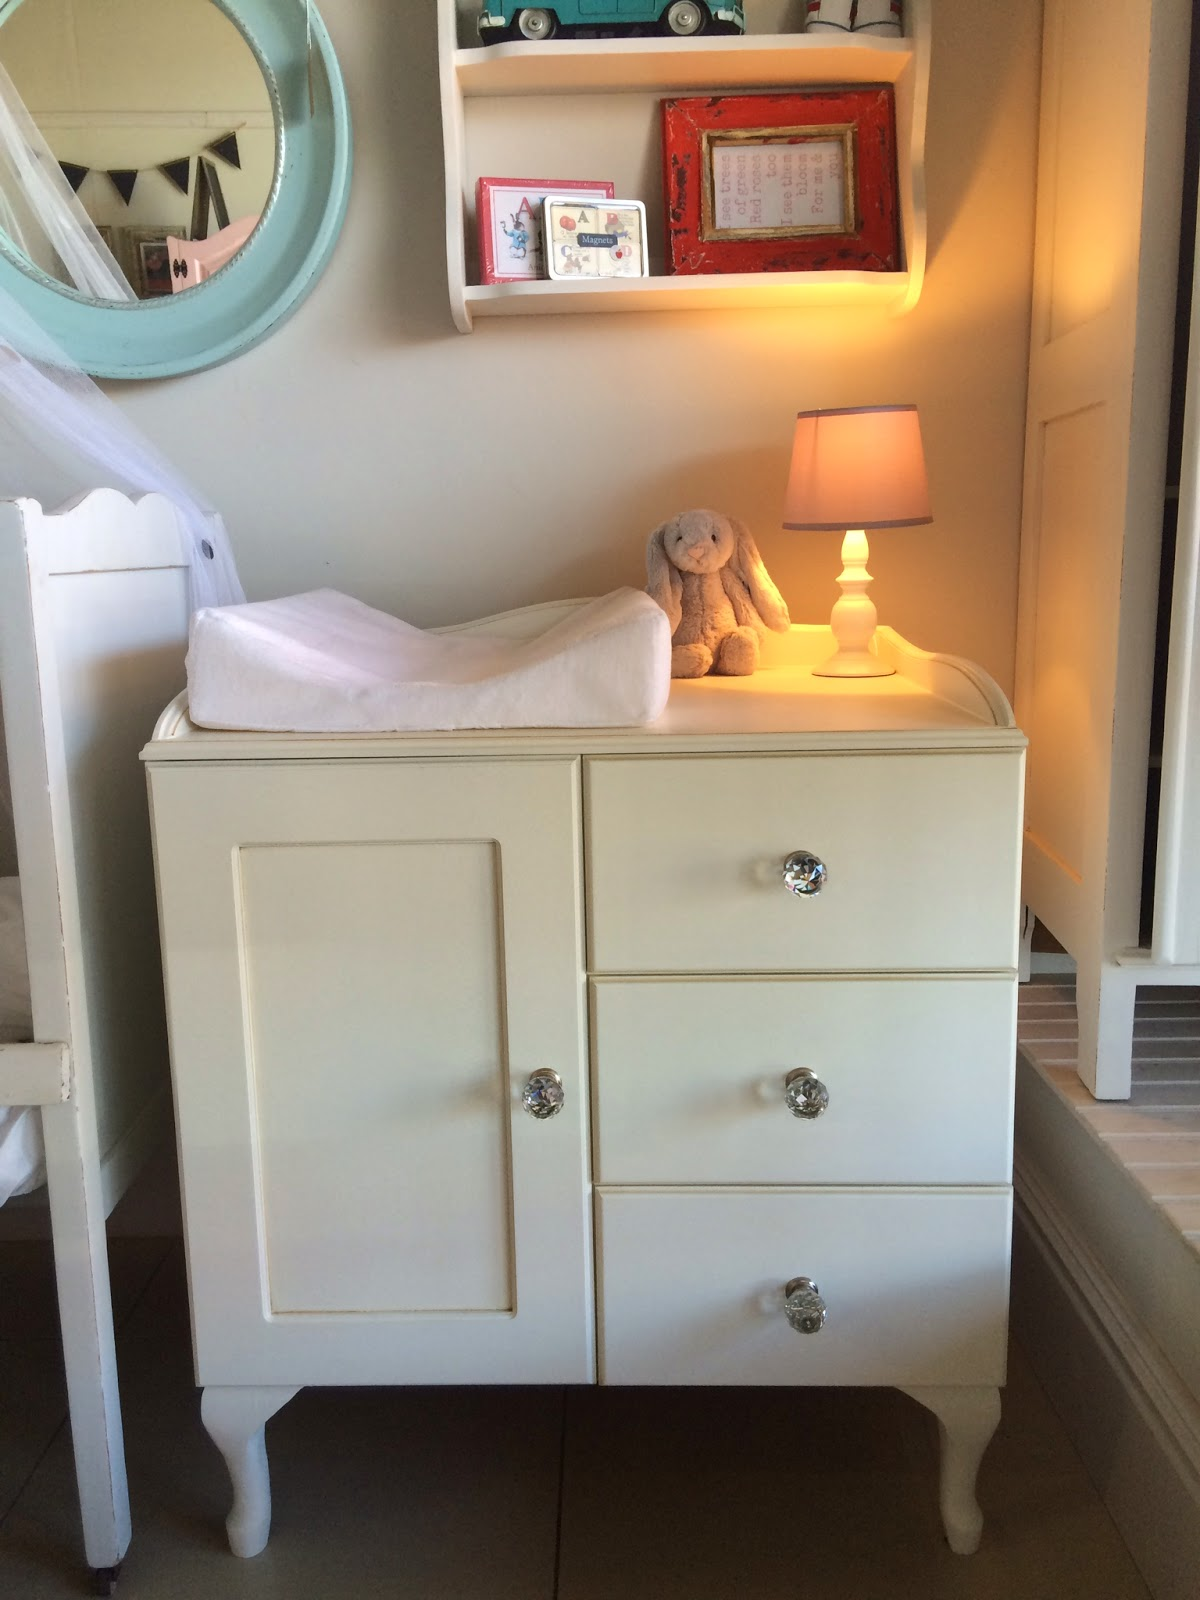 04905d77ddc1 Little Legends Baby & Child: Small Compactum (baby changing table)